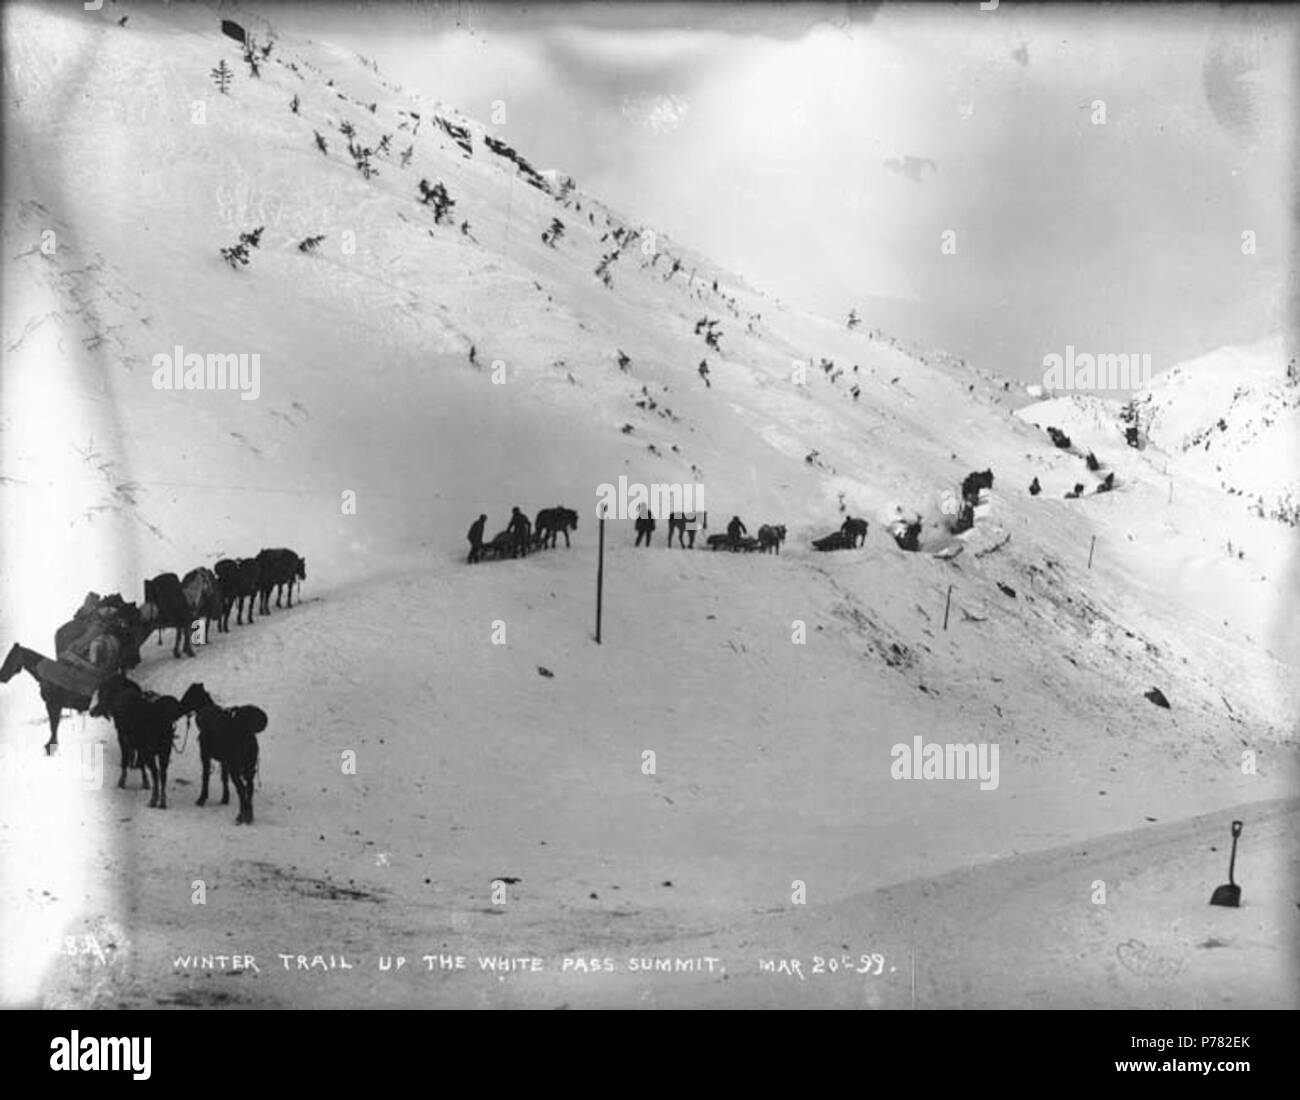 . English: Packtrains ascending the trail to White Pass summit, Alaska, March 20, 1899. English: Caption on image: 'Winter trail up the White Pass summit Mar 20th '99'' Original image in Hegg Album 9, page 41 . Klondike Gold Rush Subjects (LCTGM): Pack animals--Alaska--White Pass; Sleds & sleighs--Alaska--White Pass Subjects (LCSH): Mountain passes--Alaska; White Pass Trail; Trails--Alaska  . 1899 10 Packtrains ascending the trail to White Pass summit, Alaska, March 20, 1899 (HEGG 25) - Stock Image